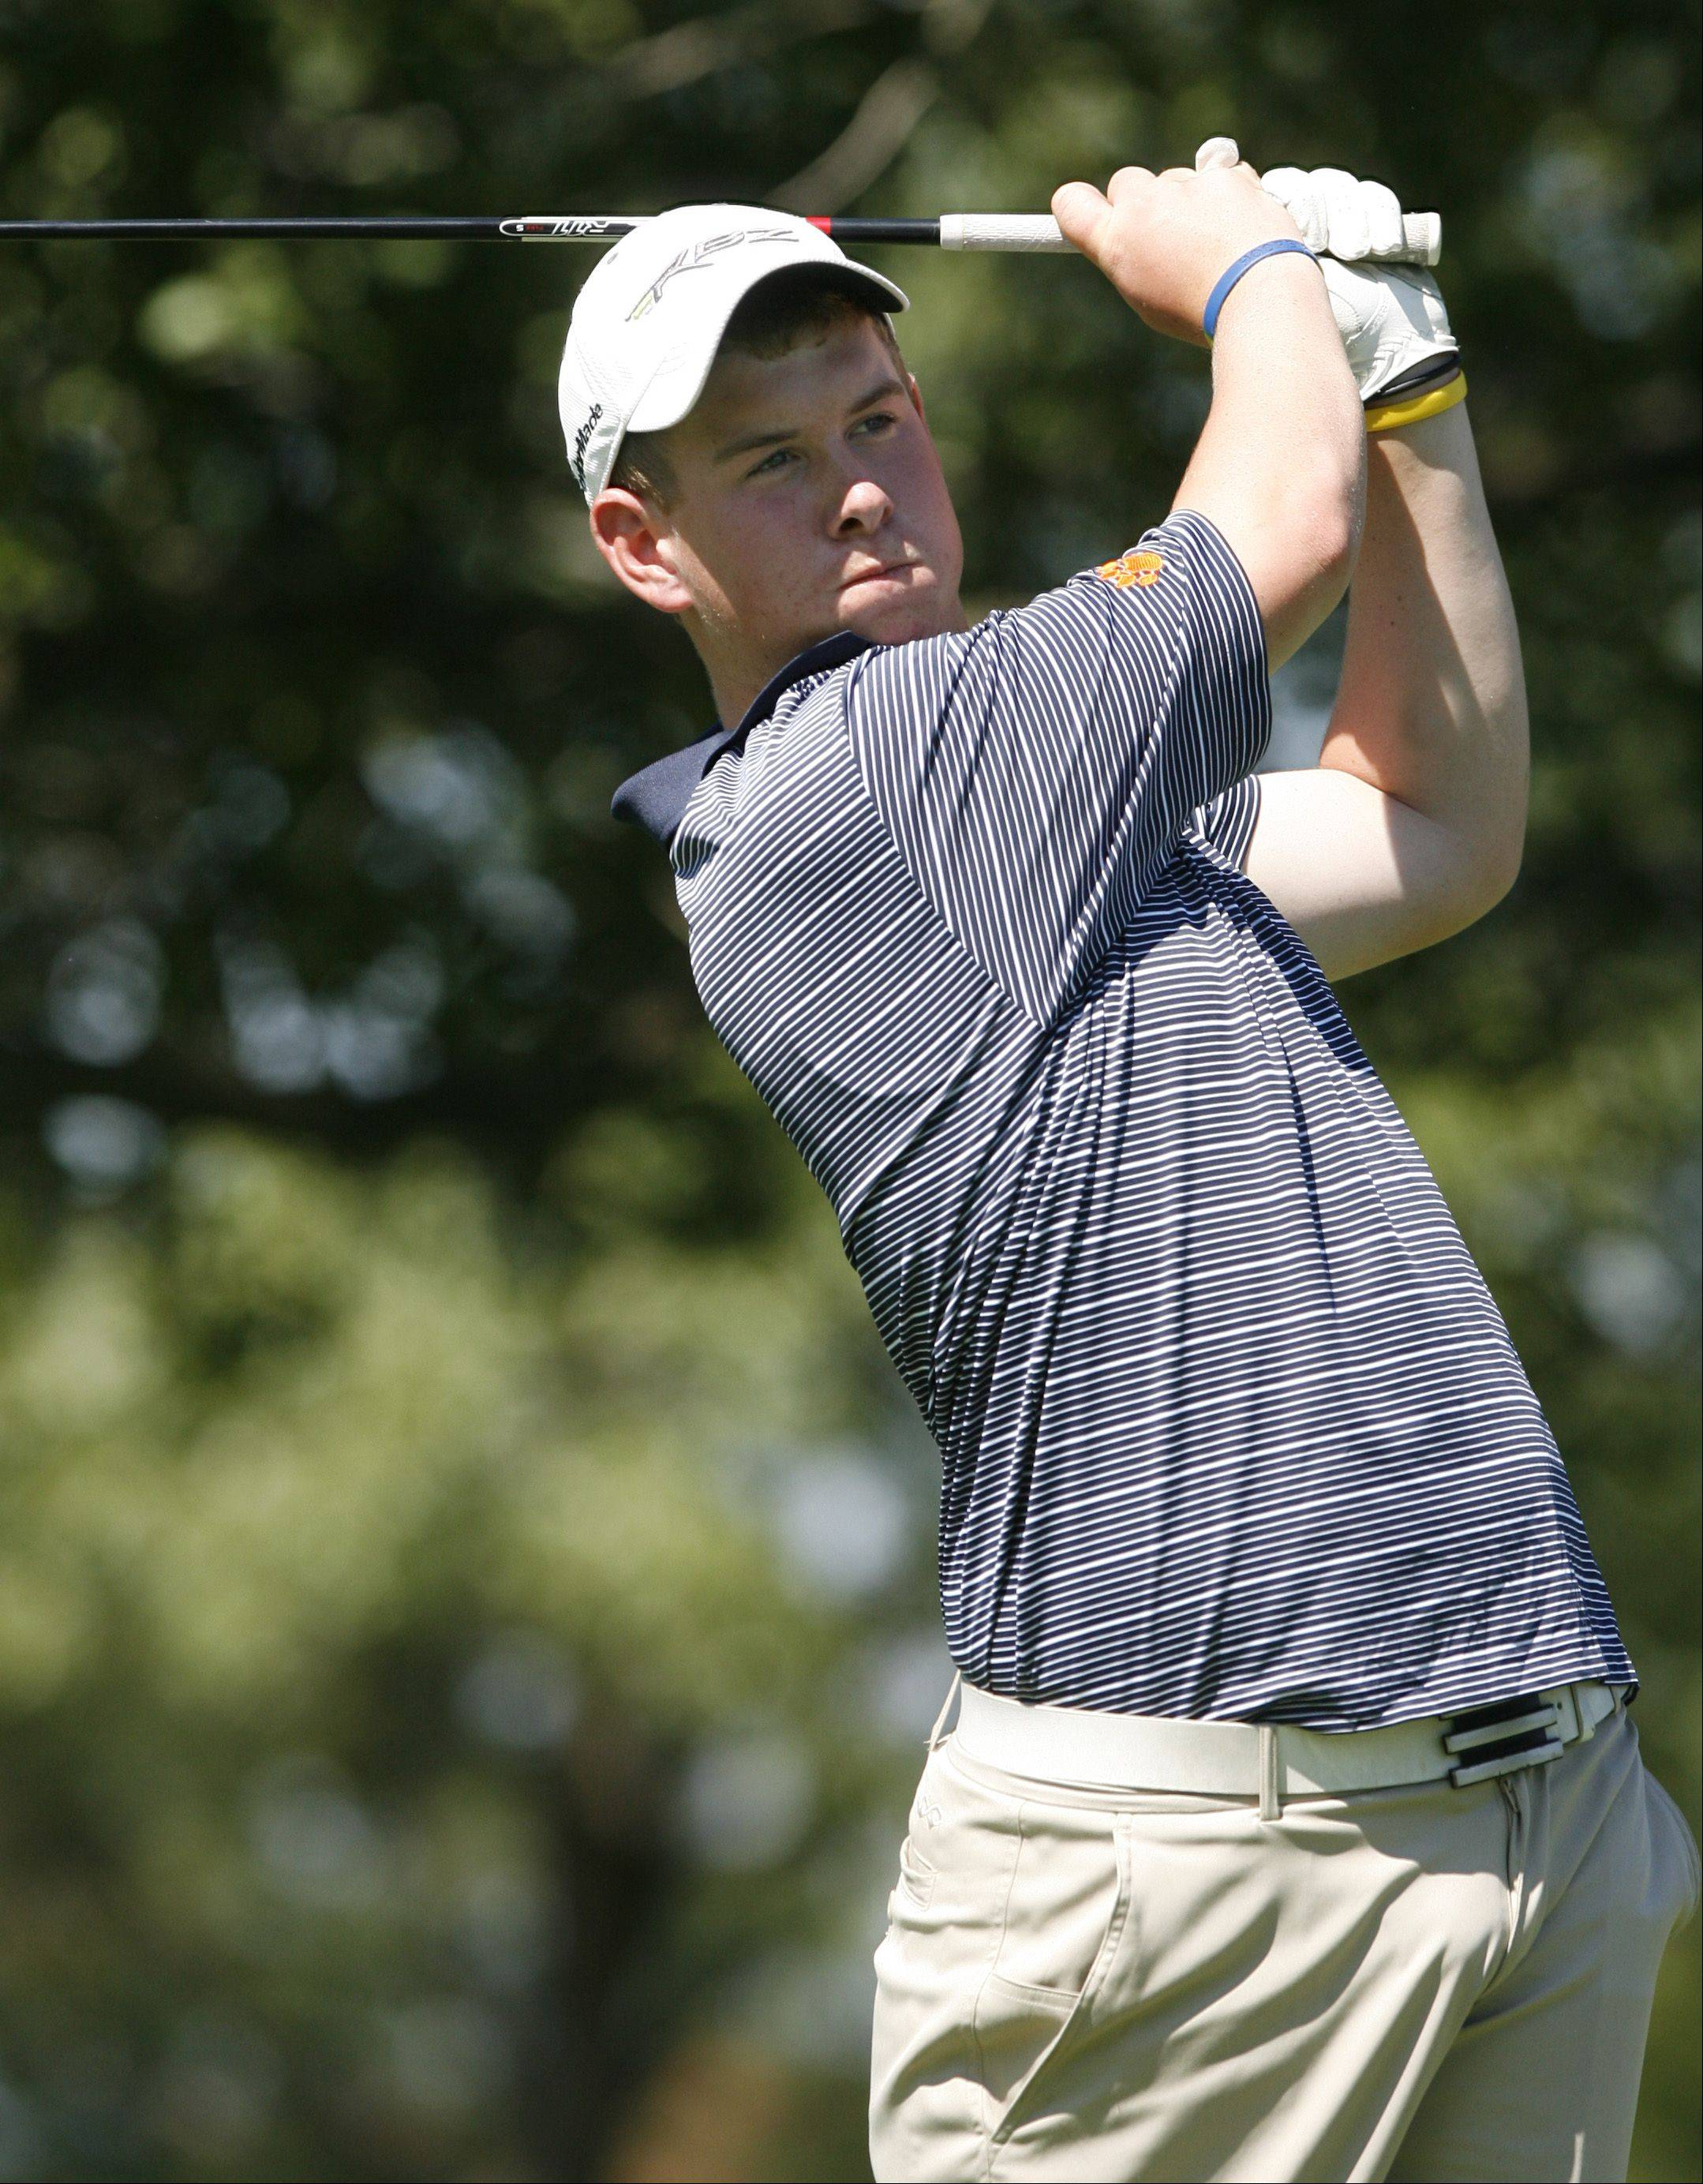 Naperville North�s Raymond Knoll tees off during the Vern McGonagle Memorial High School Golf Championship, held at the Naperville Country Club.